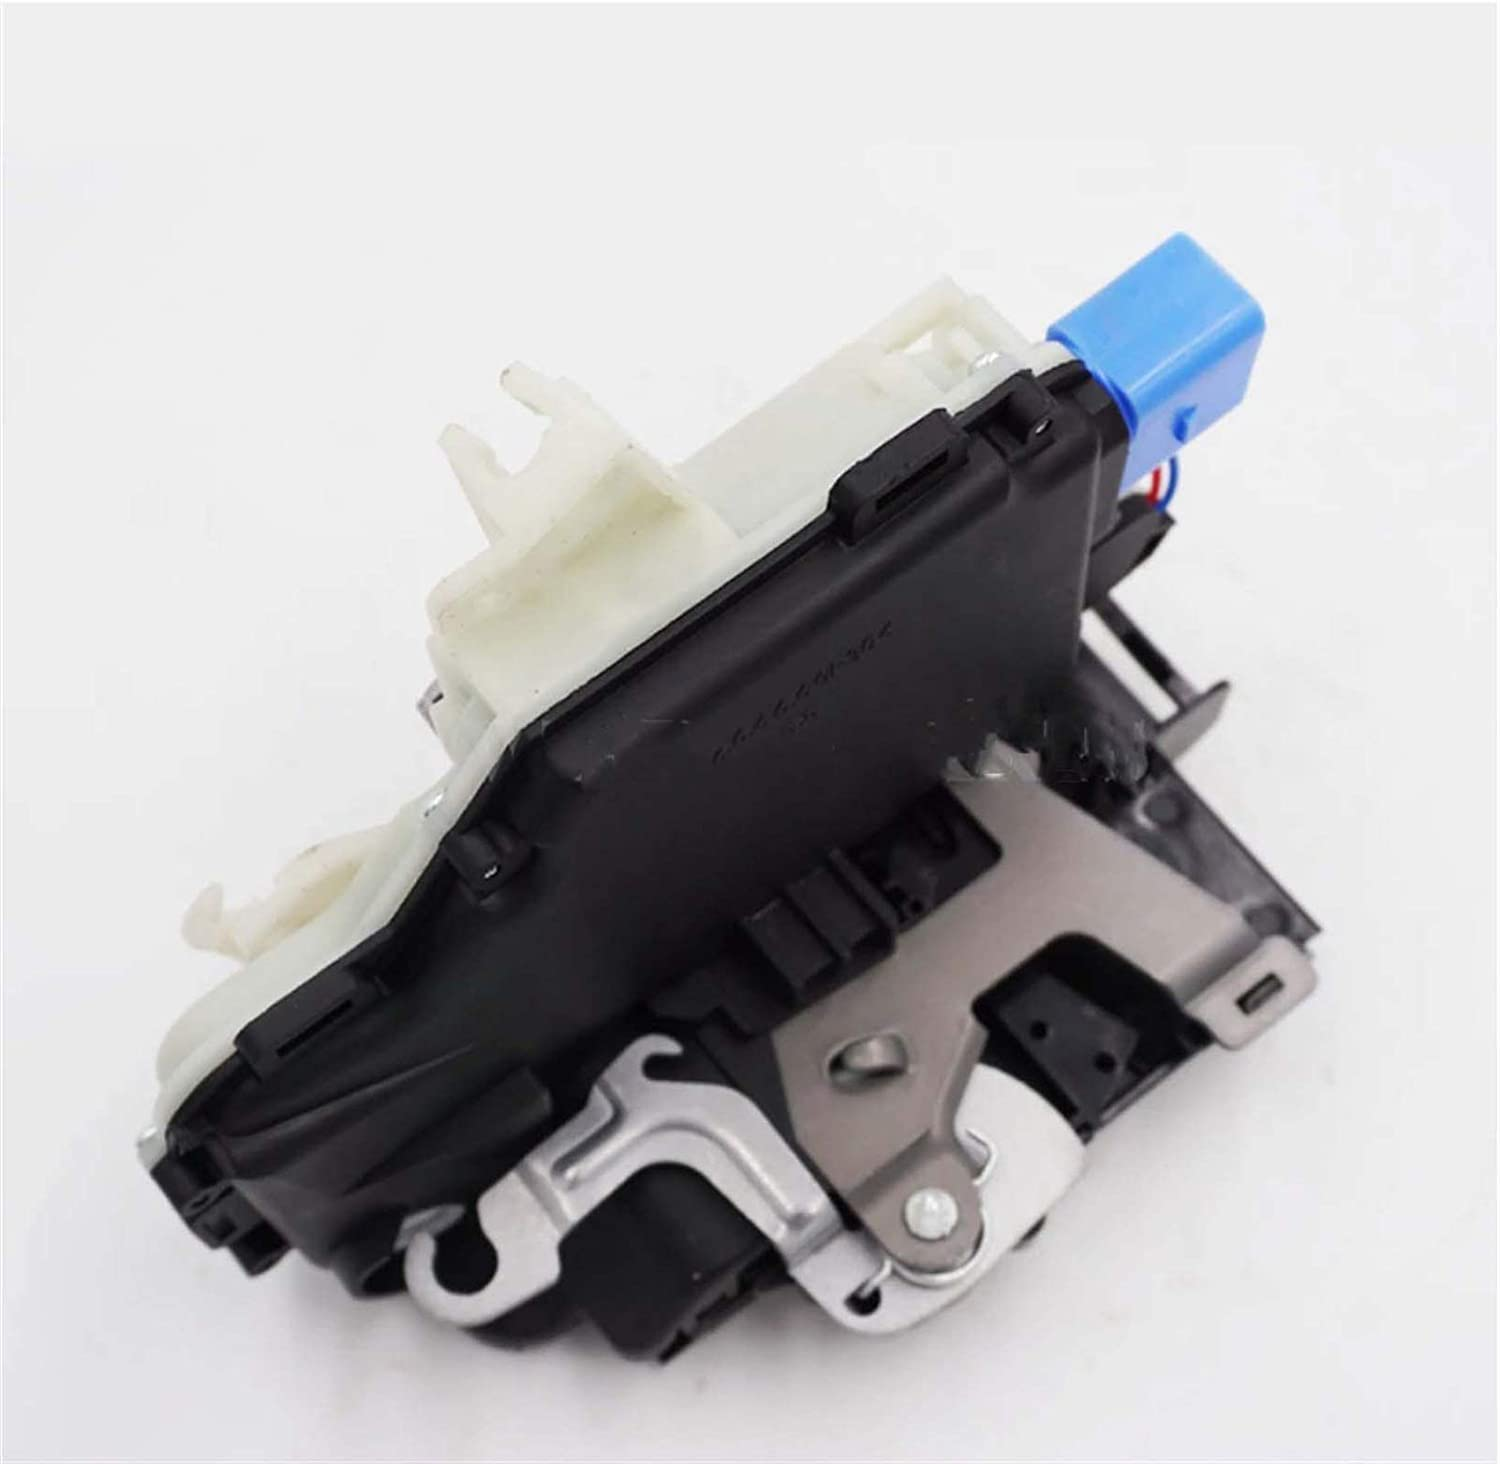 IBIZA FJY-HANDLE FRONT LEFT Door Lock Actuator FOR VW NEW BEETLE POLO 9n TRANSPORTER t5 SKODA FABIA ROOMSTER SUPERB SEAT CORDOBA 6L